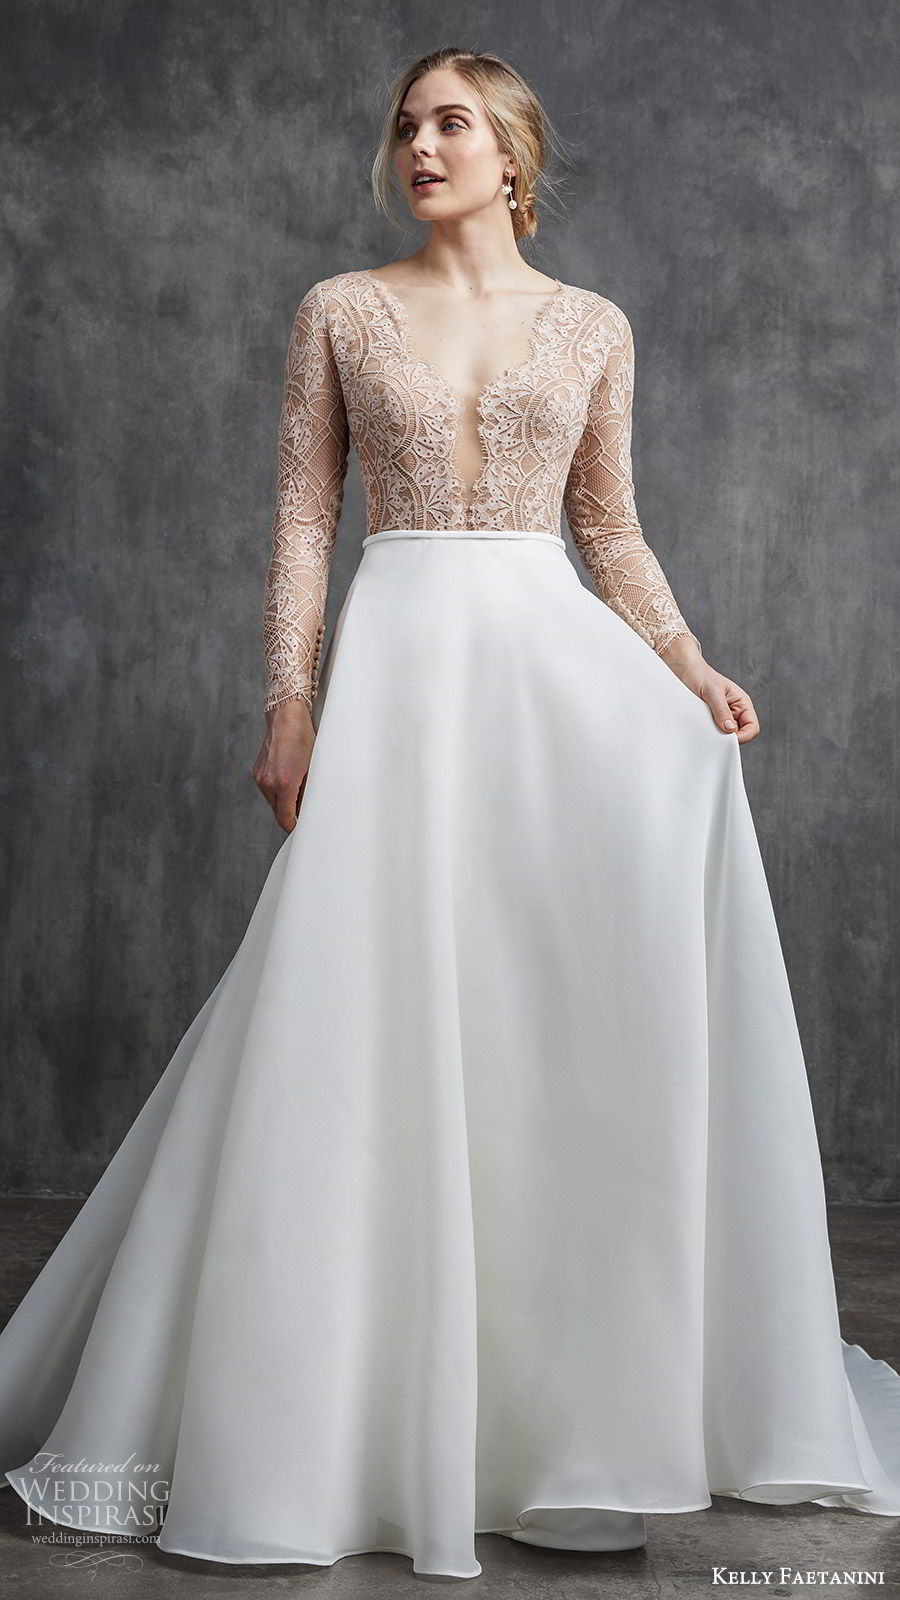 kelly faetanini spring 2020 bridal illusion long sleeves v neckline lace bodice fit flare modified a line ball gown wedding dress (2) chapel train elegant nude color mv